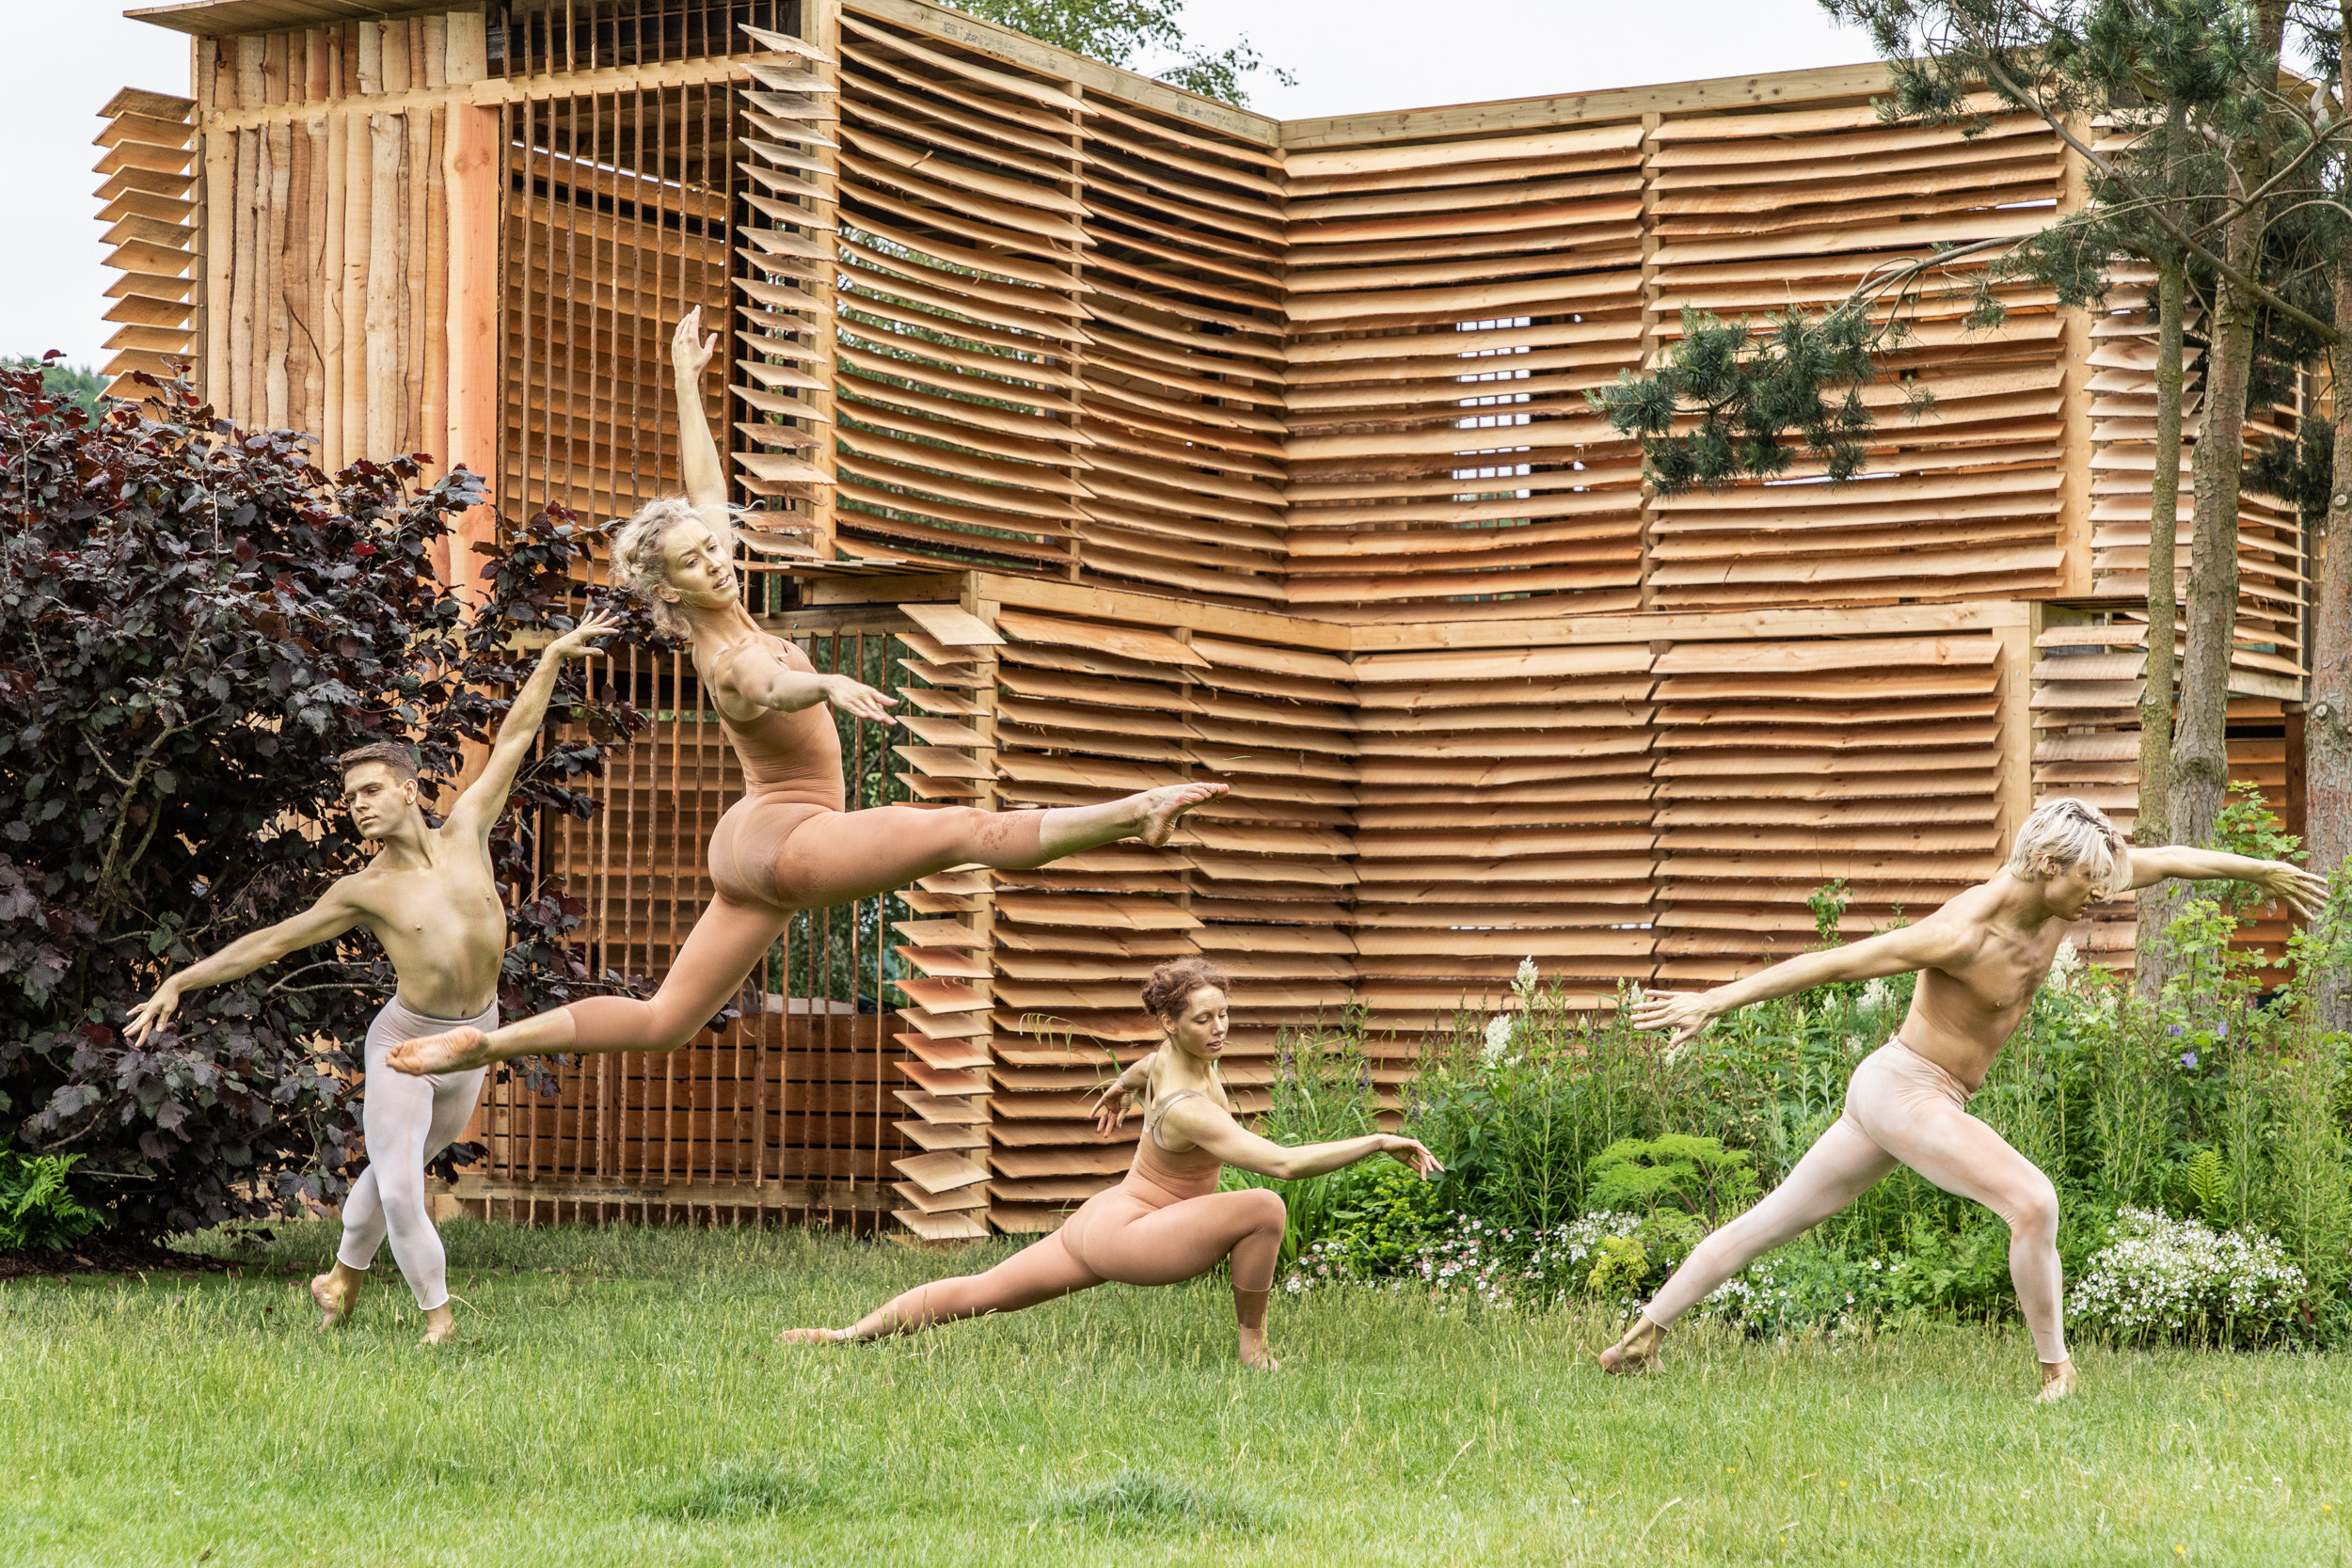 Dancers from the International Art Collective performing on the Brewin Dolphin Garden at this years RHS Chatsworth Flower Show.